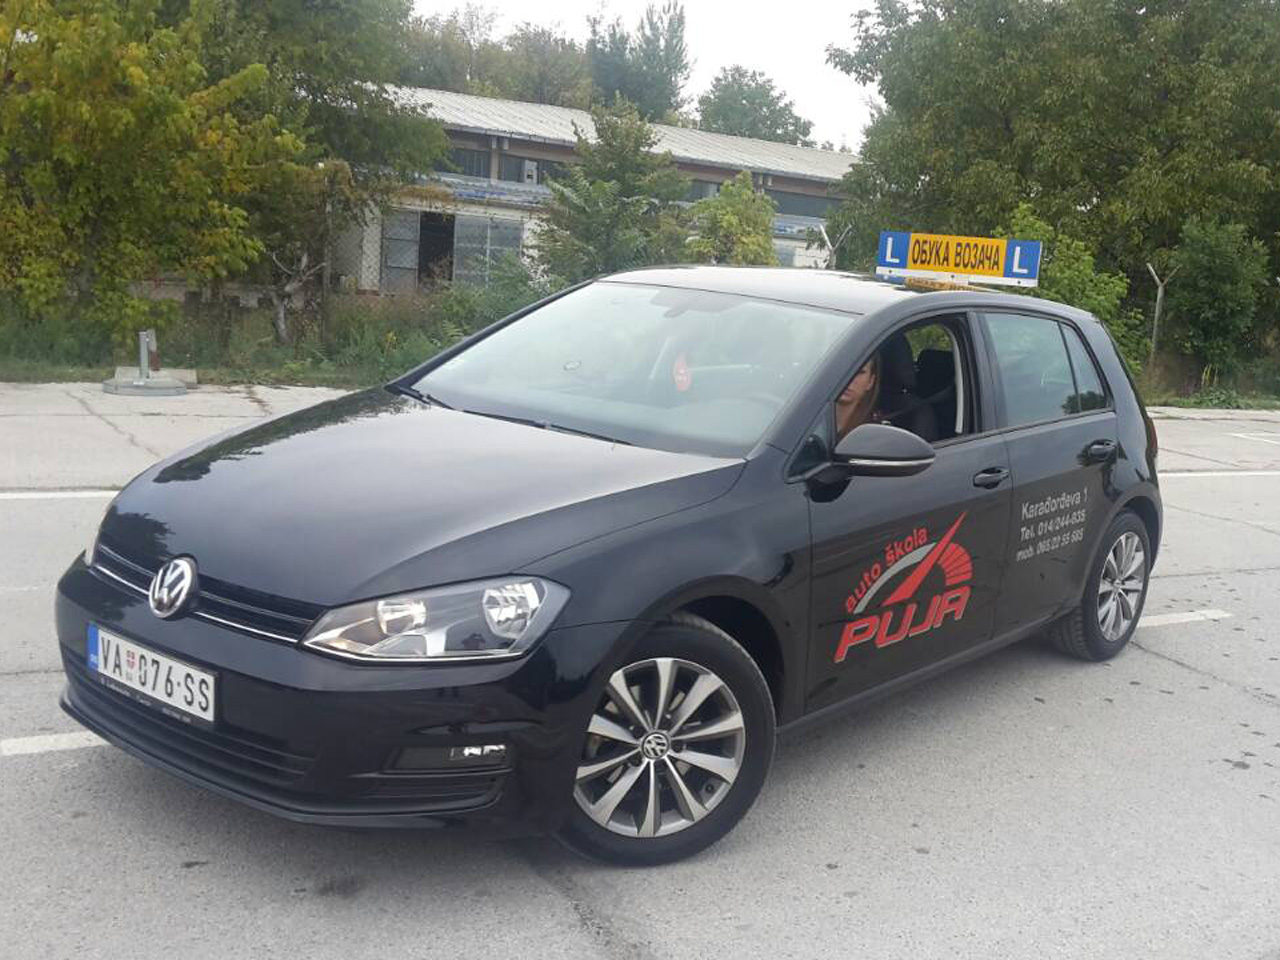 TOWING SERVICE AND DRIVING SCHOOL PUJA Towing services Valjevo - Photo 3